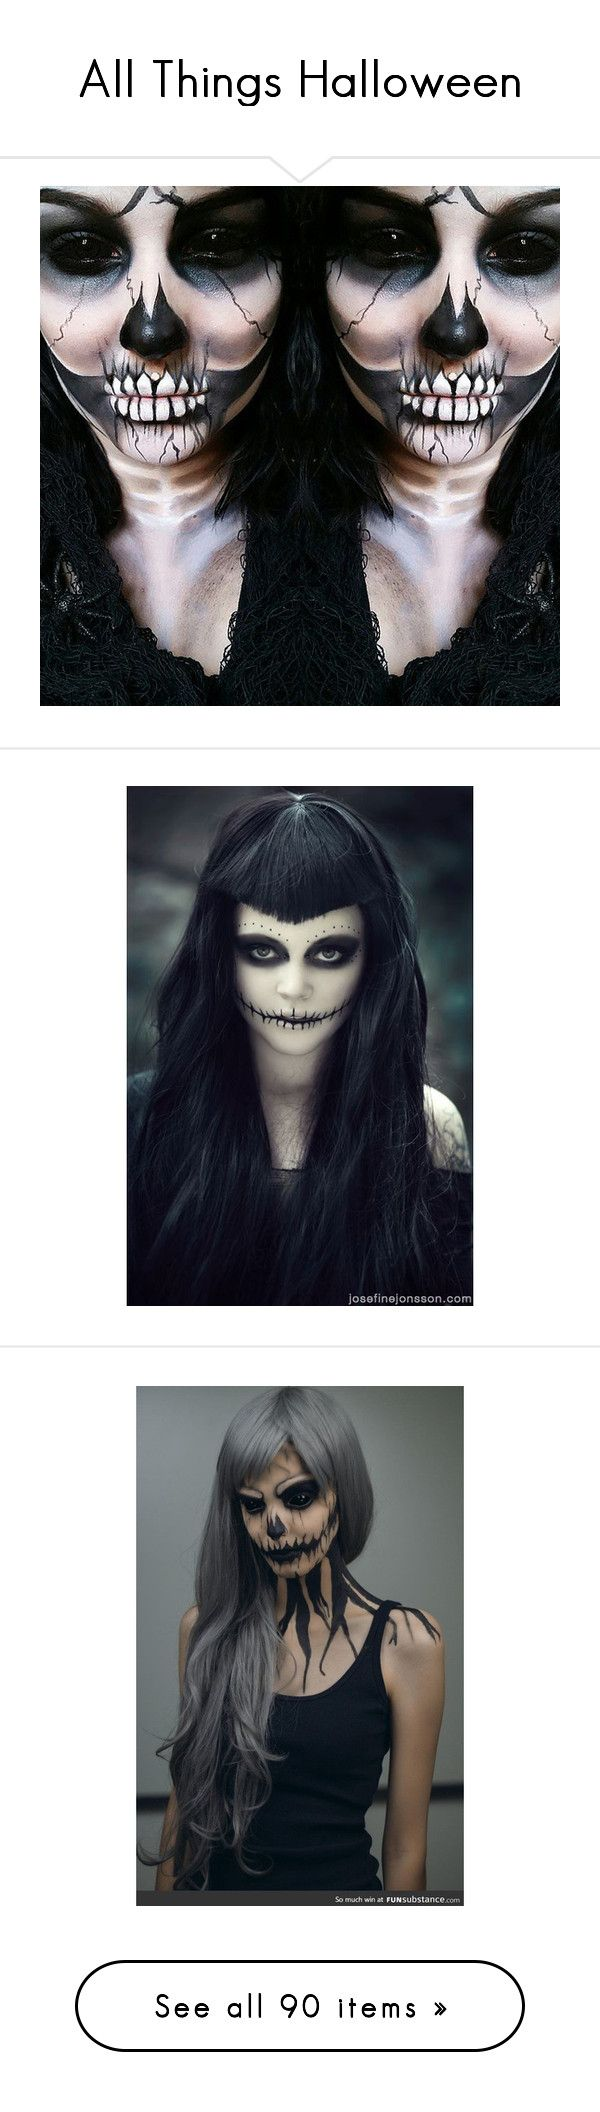 """""""All Things Halloween"""" by macklfryhover ❤ liked on Polyvore featuring art, makeup, beauty products, skull makeup, face makeup, zipper face makeup, zipper makeup, halloween, going out makeup and holiday party makeup"""